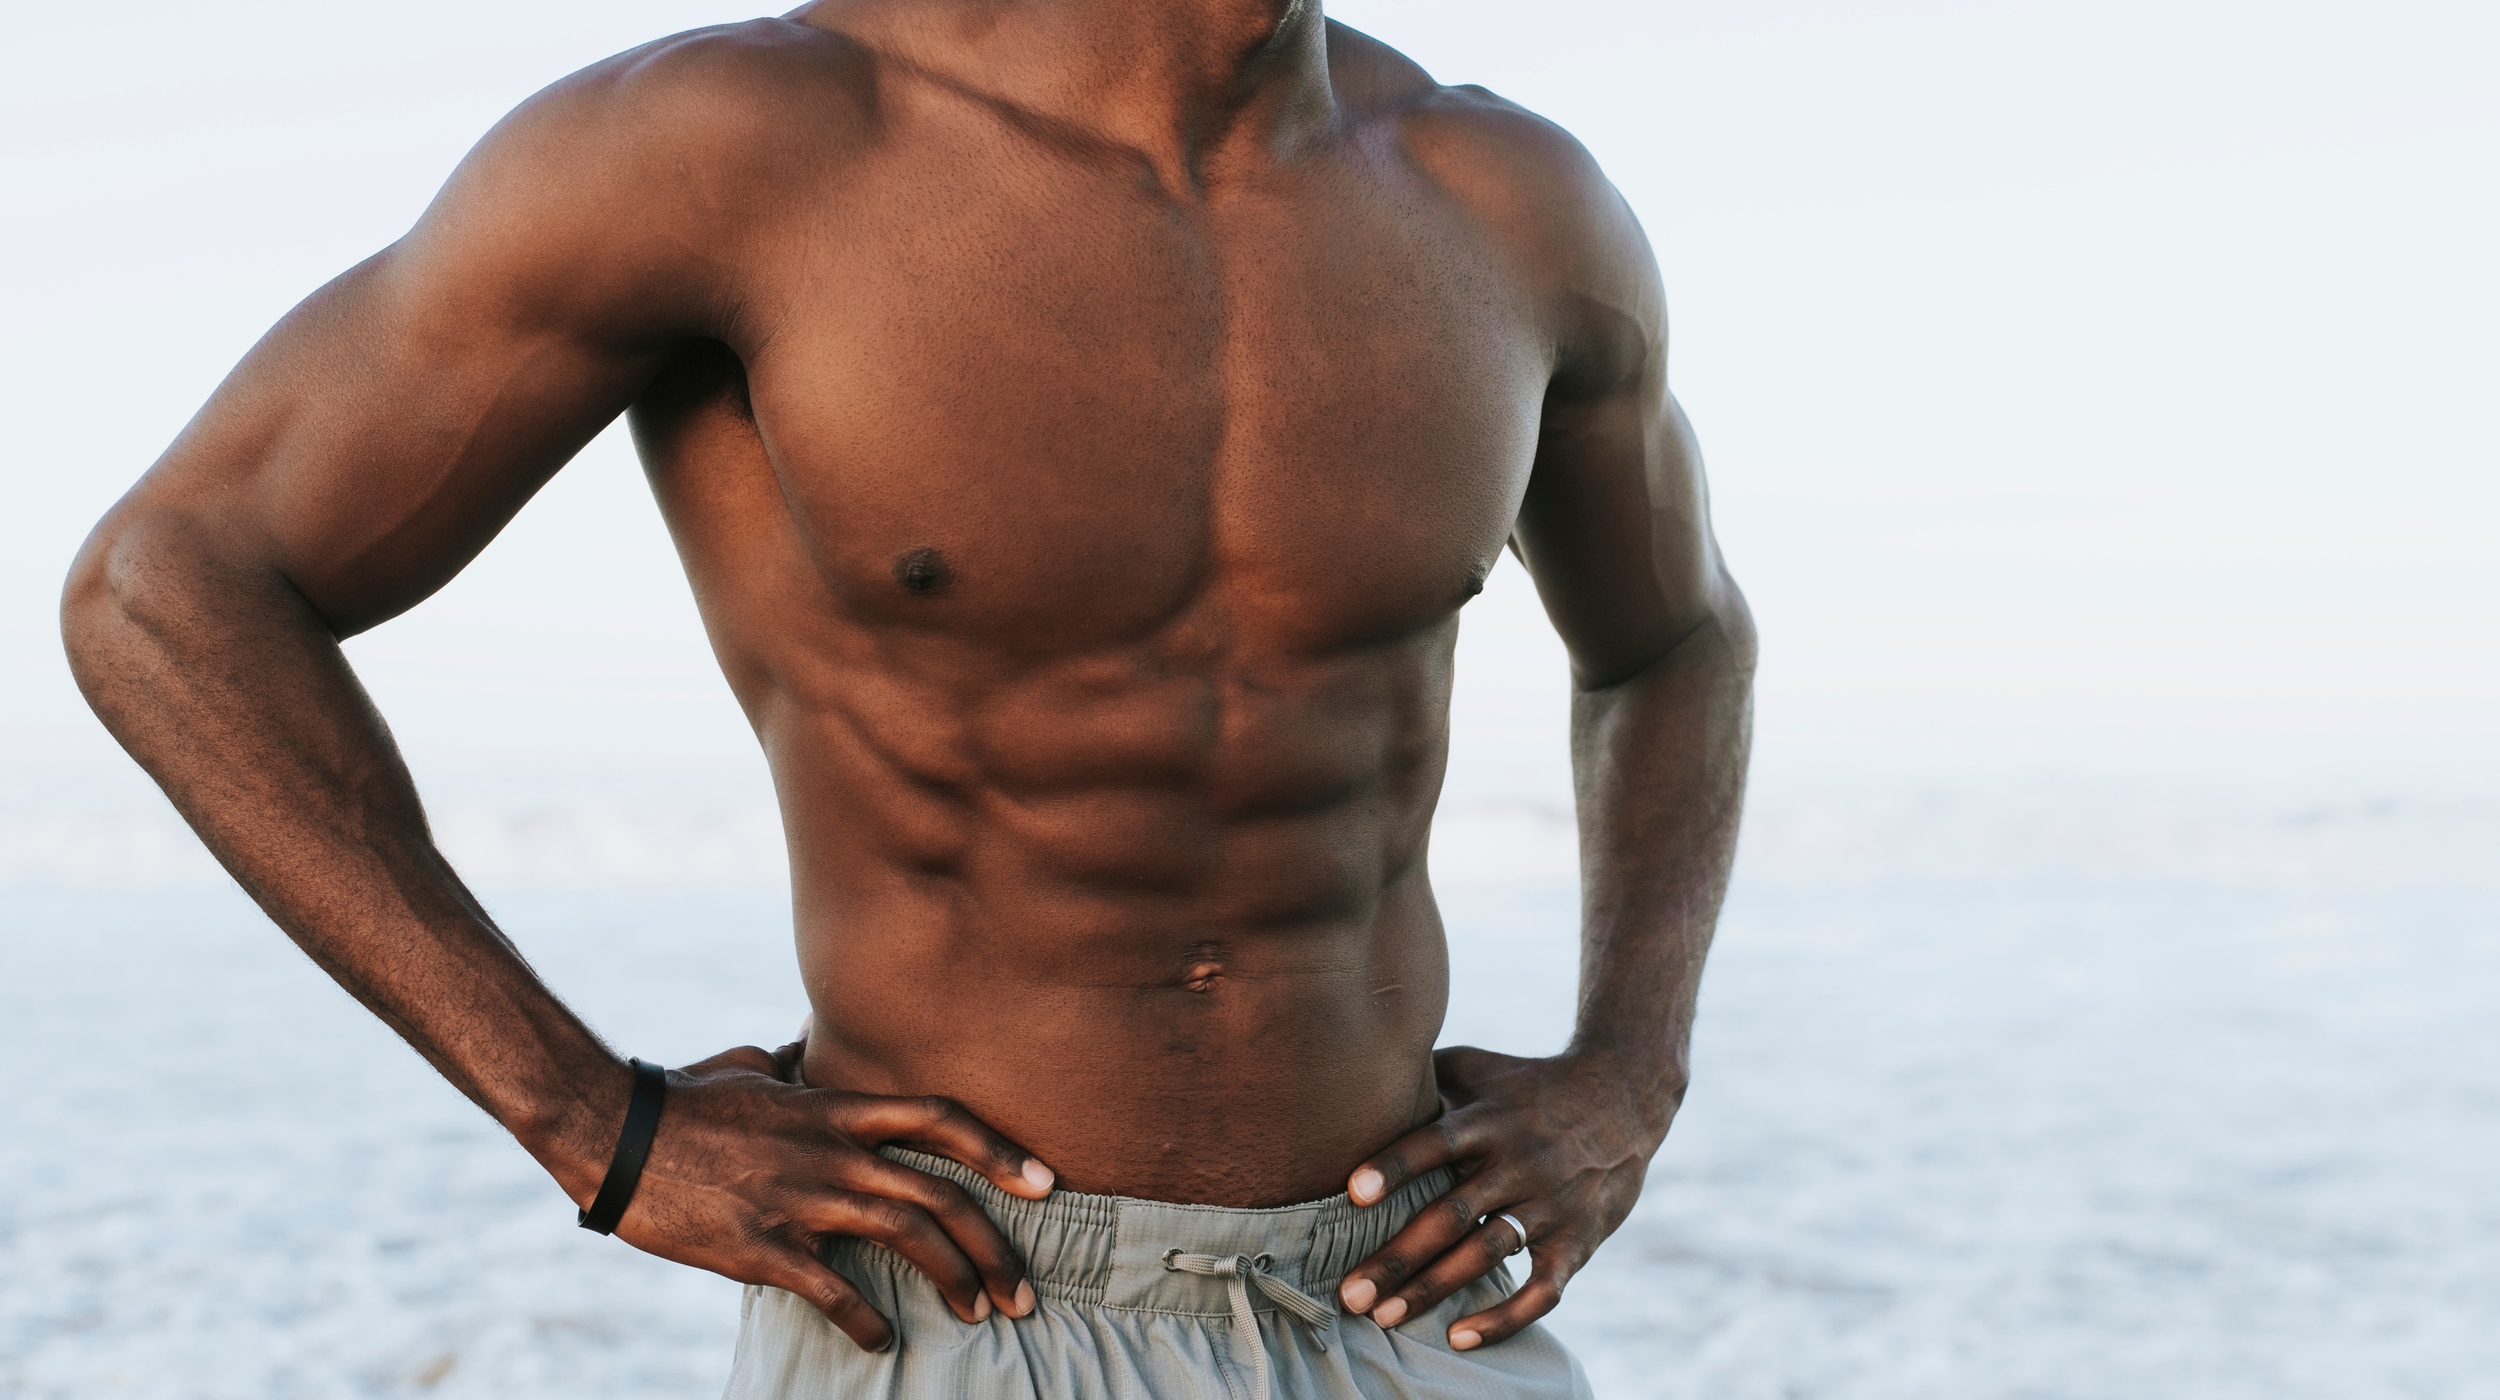 Getting a Great Body for Skinny Guys